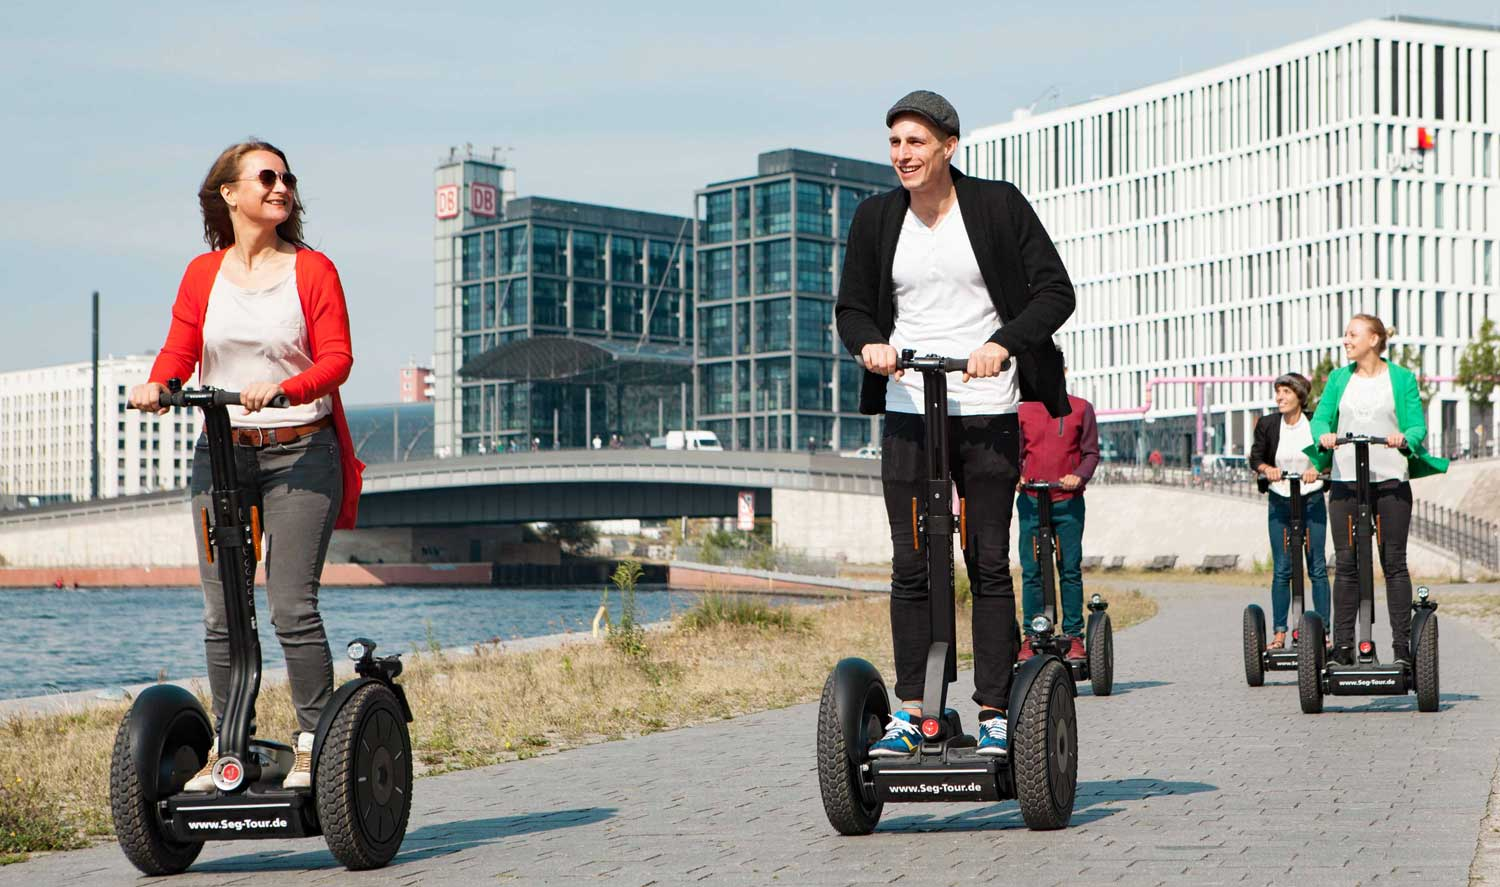 Segway-Tour-Berlin